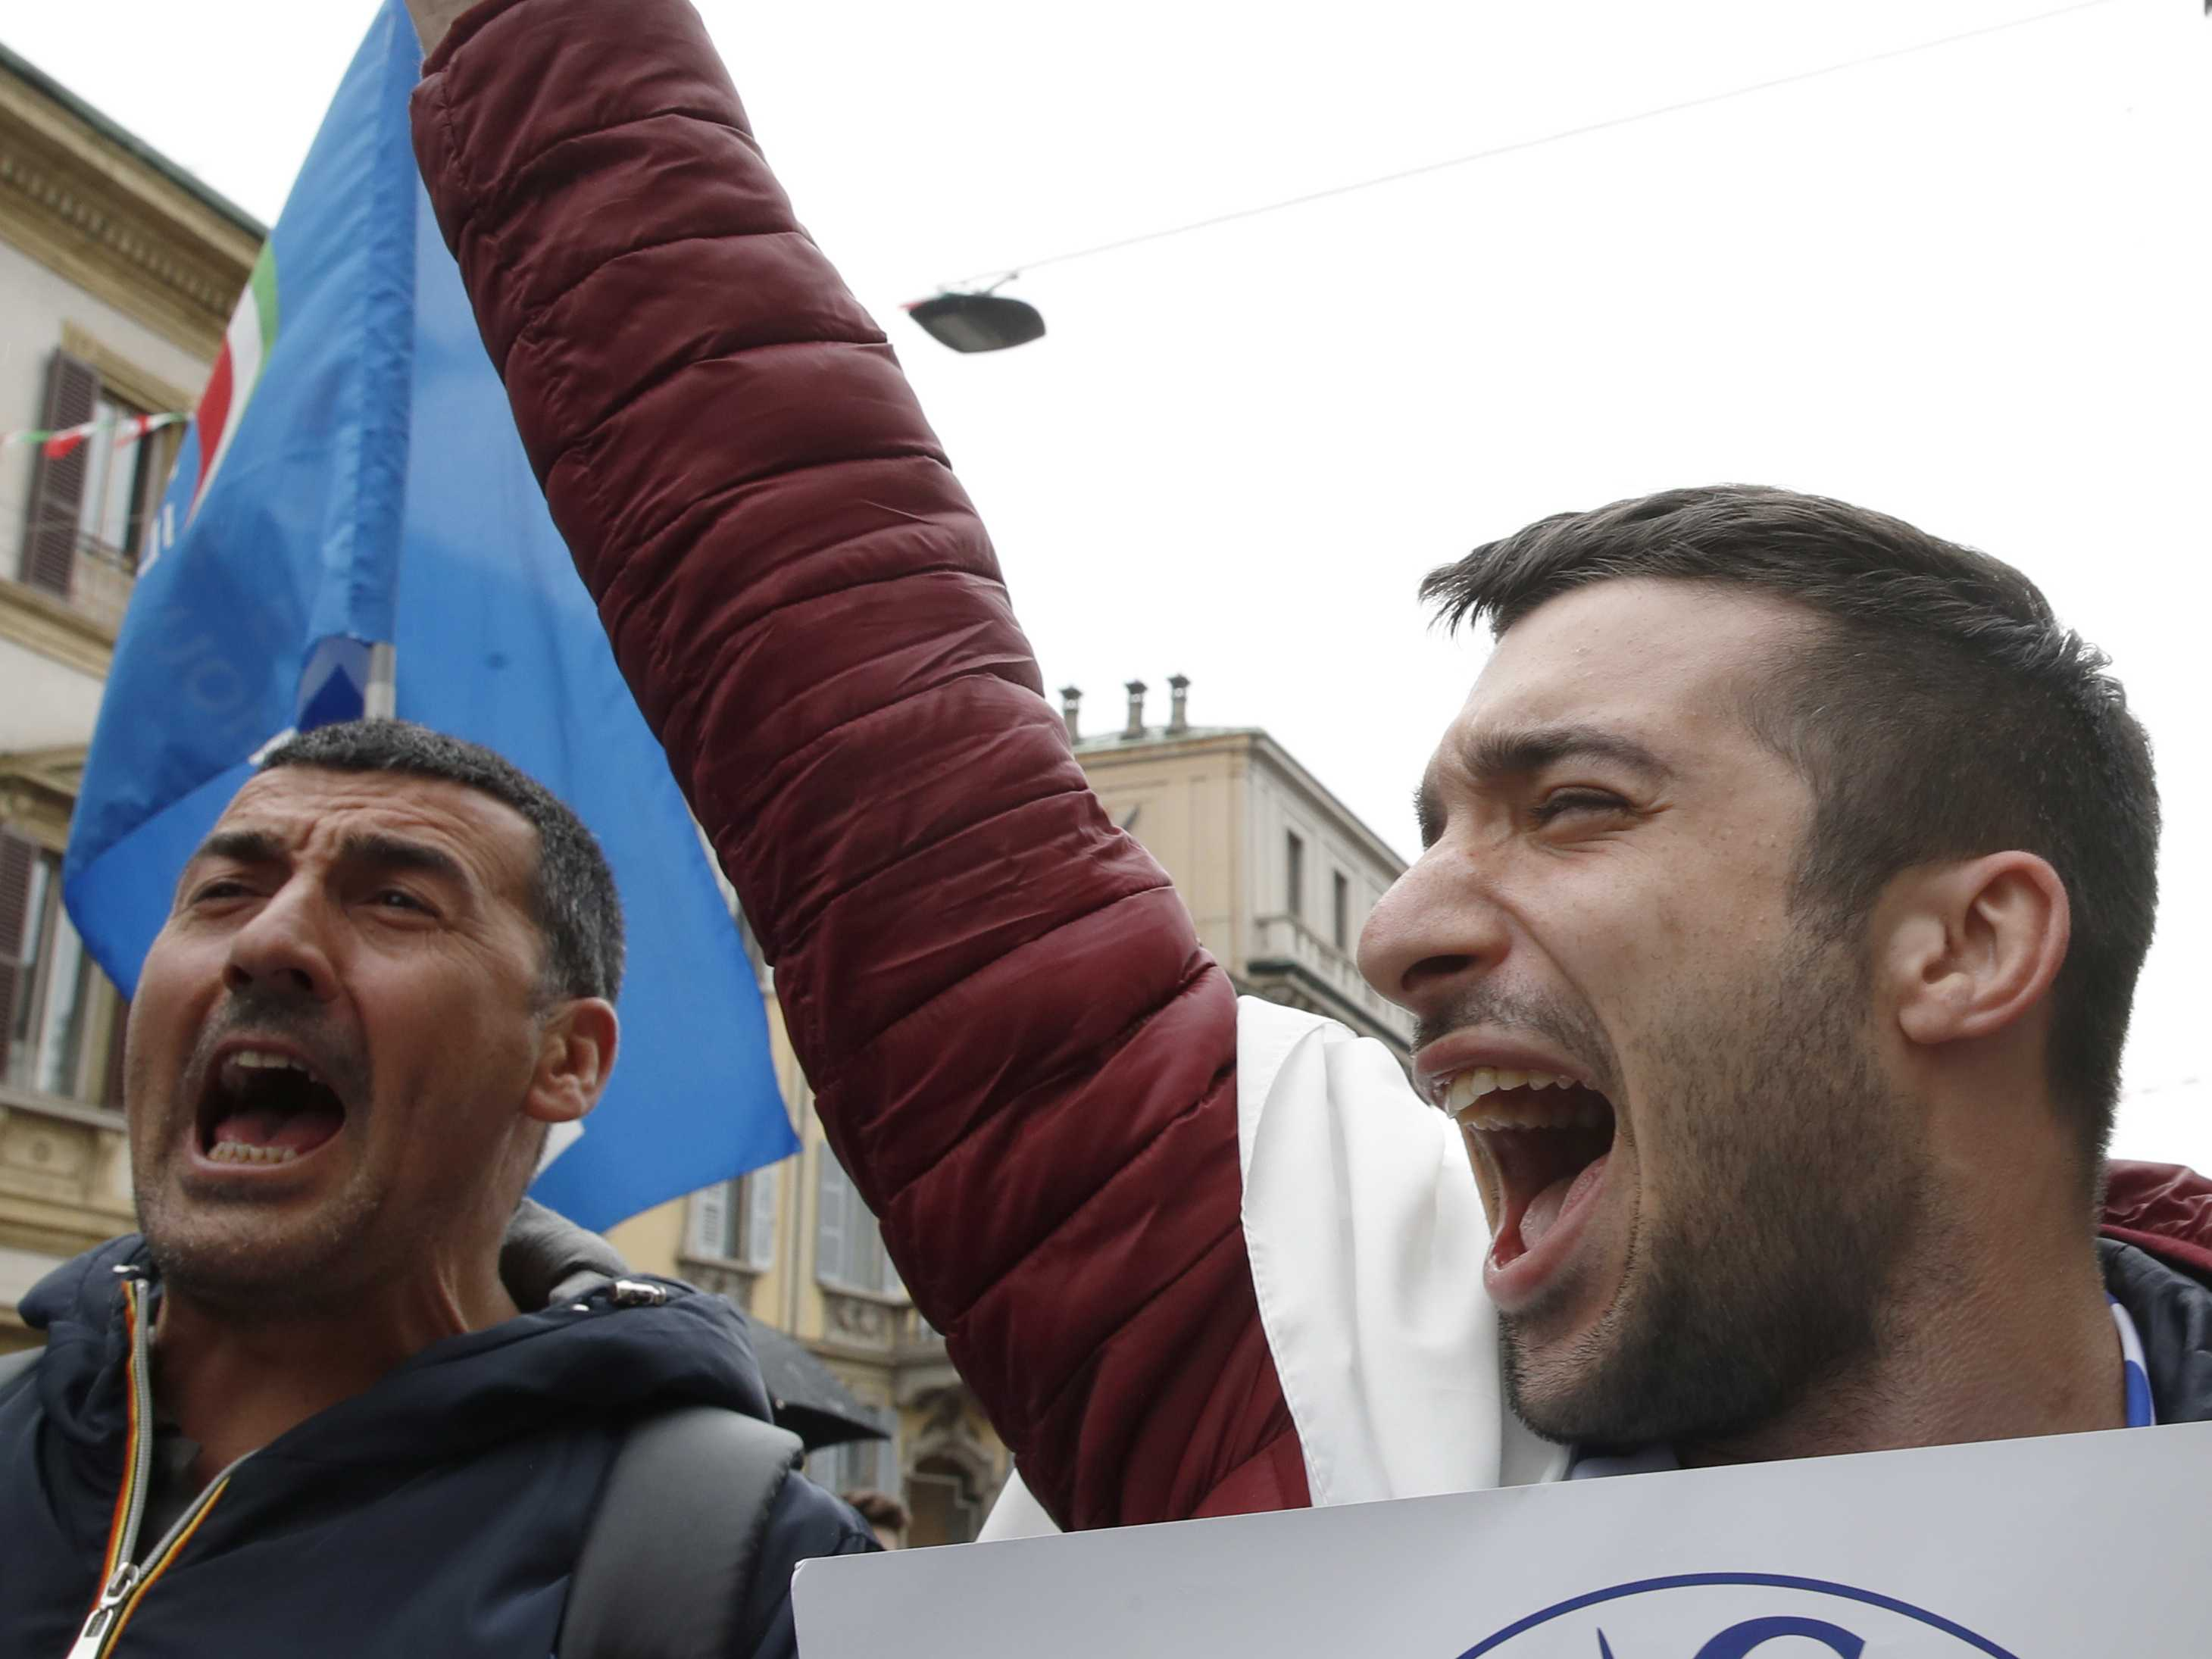 Italy's Salvini Stakes Out Post as Europe's Populist Leader